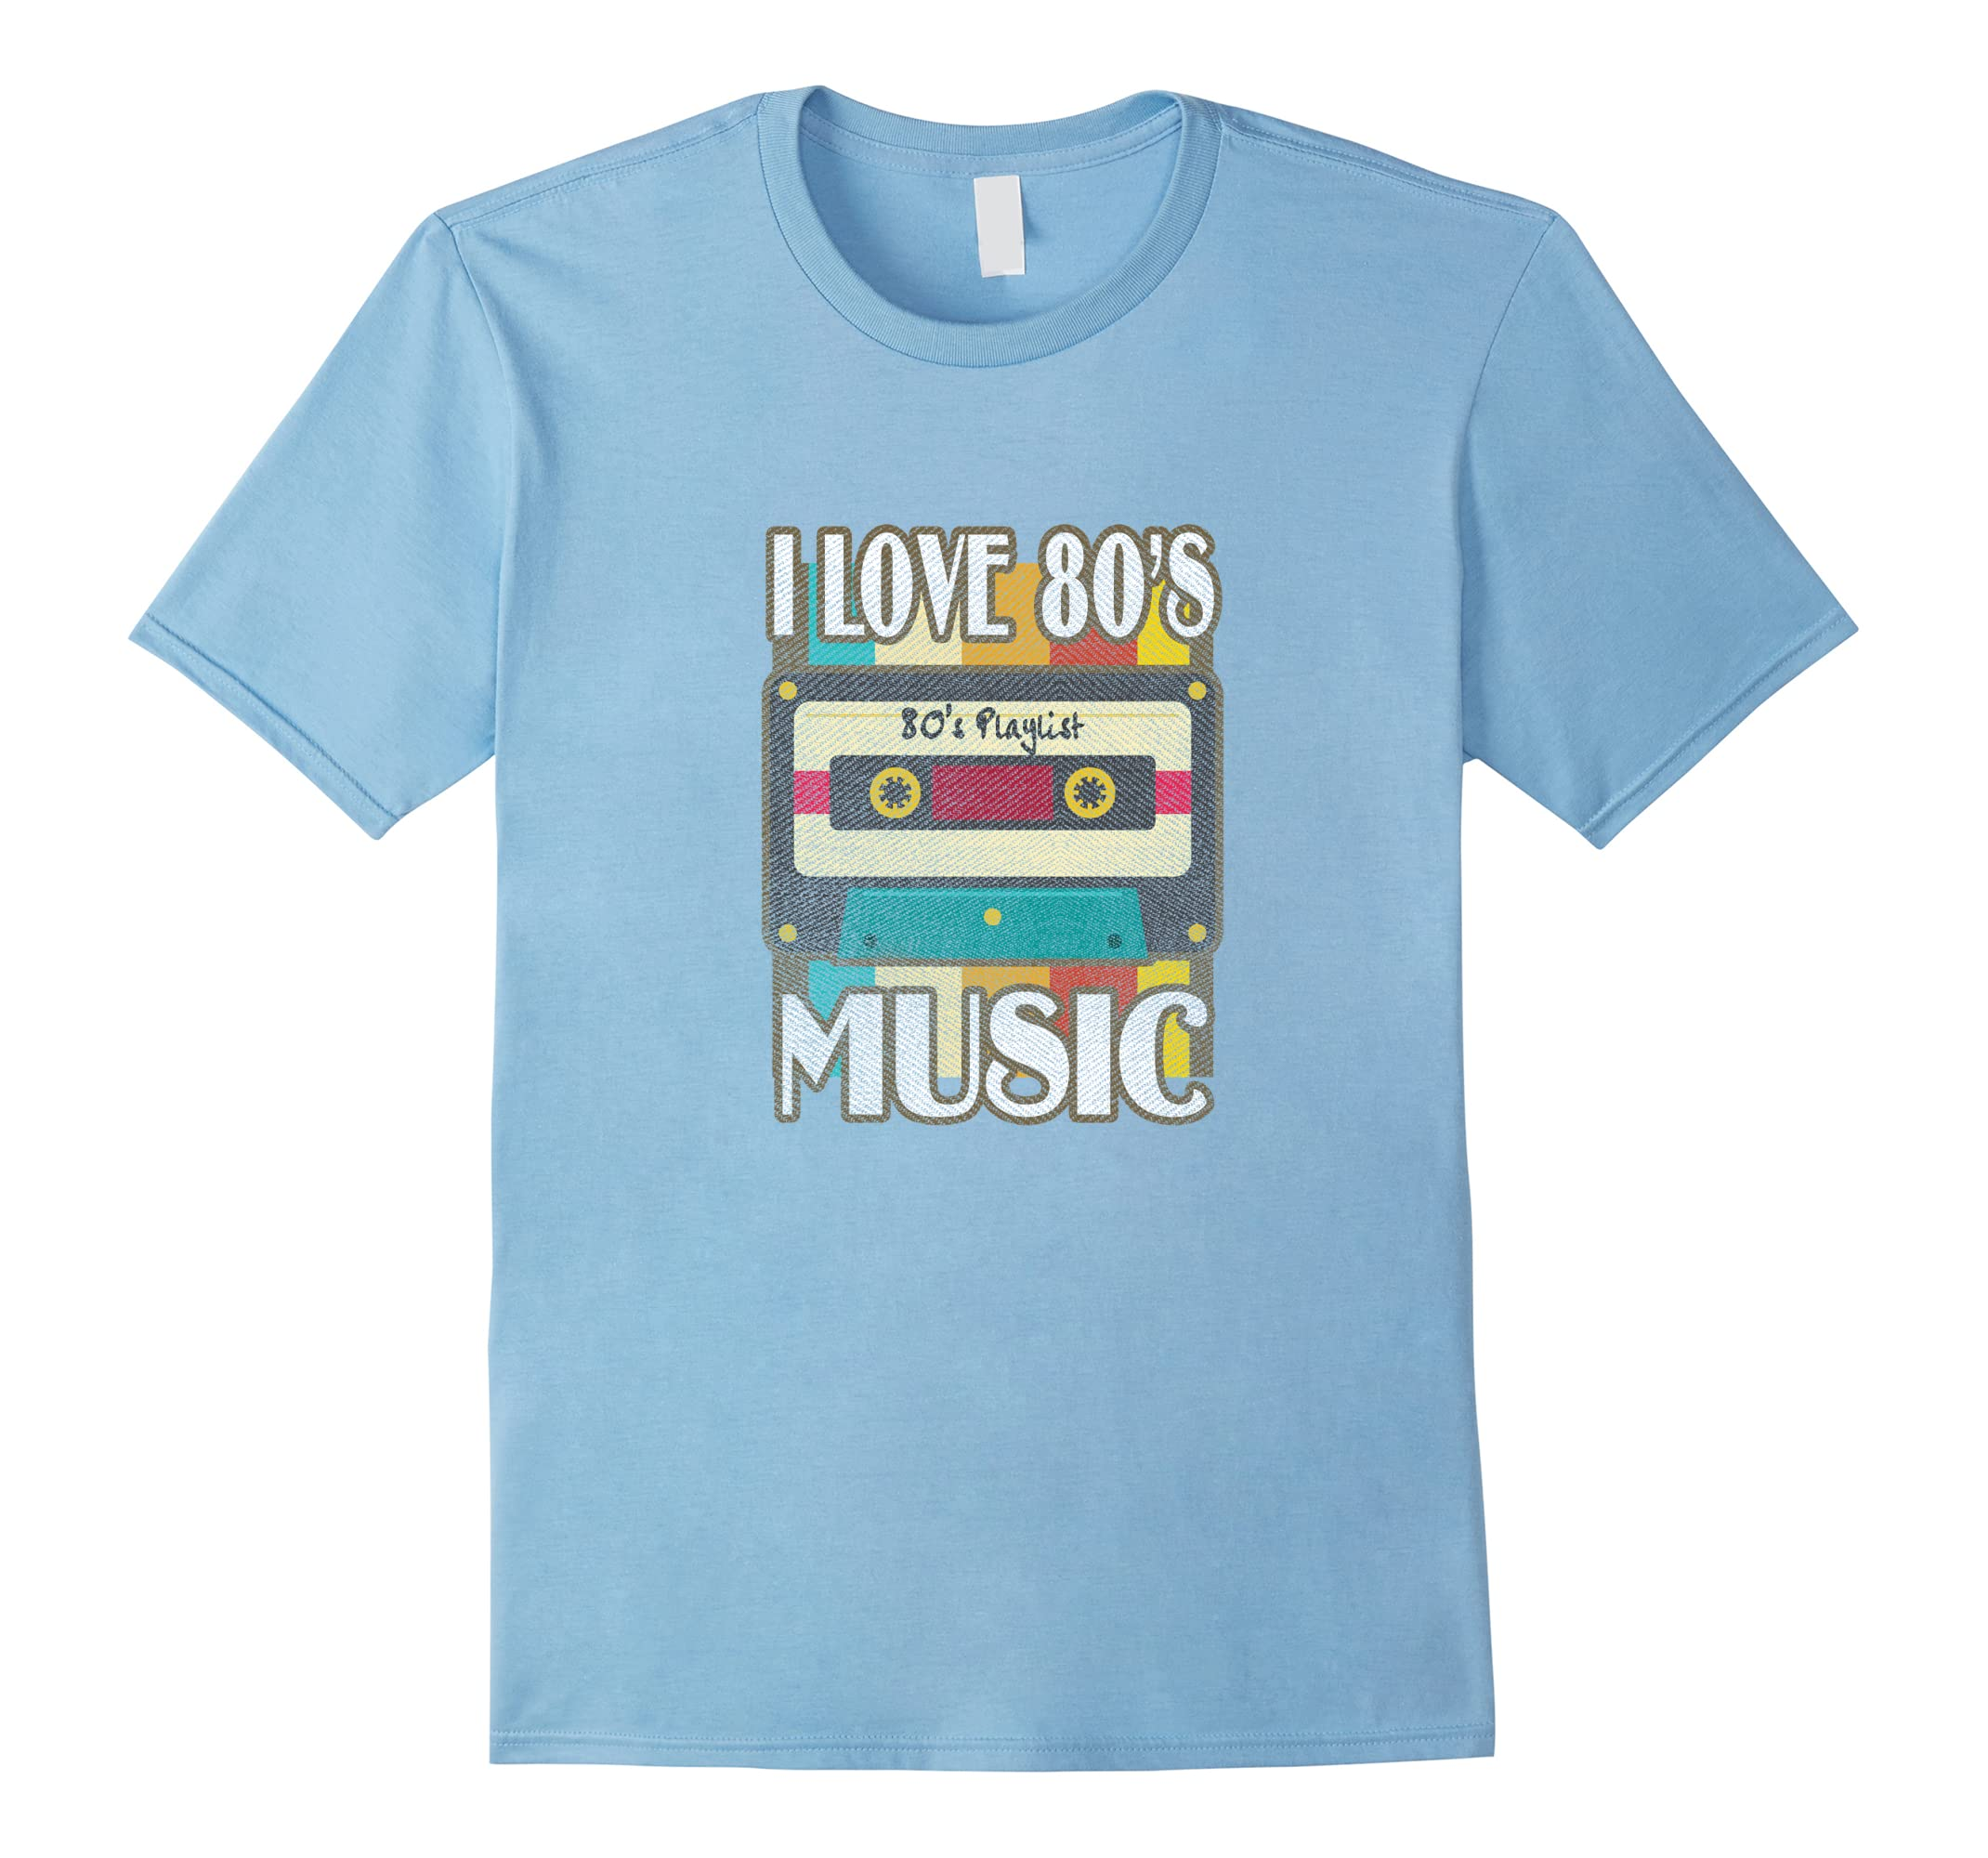 1980s Shirt - I Love 80's Music T Shirt - Texture Effect-ah my shirt one gift